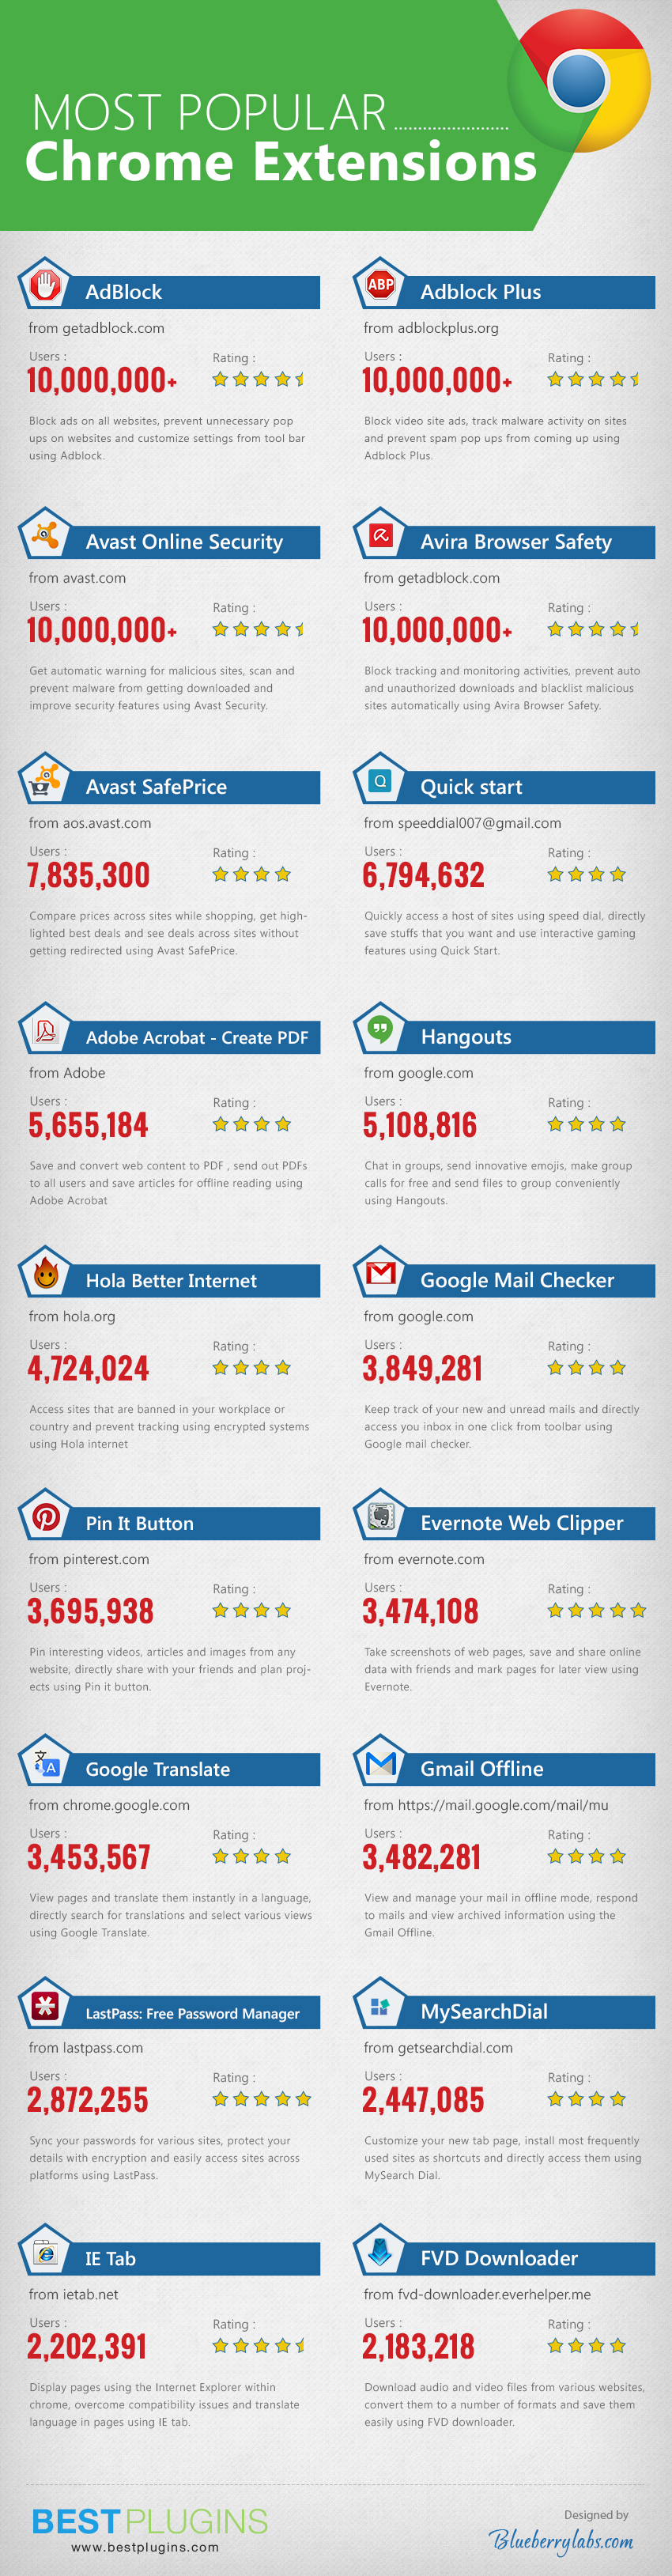 Most-Popular-Google-Chrome-Extensions